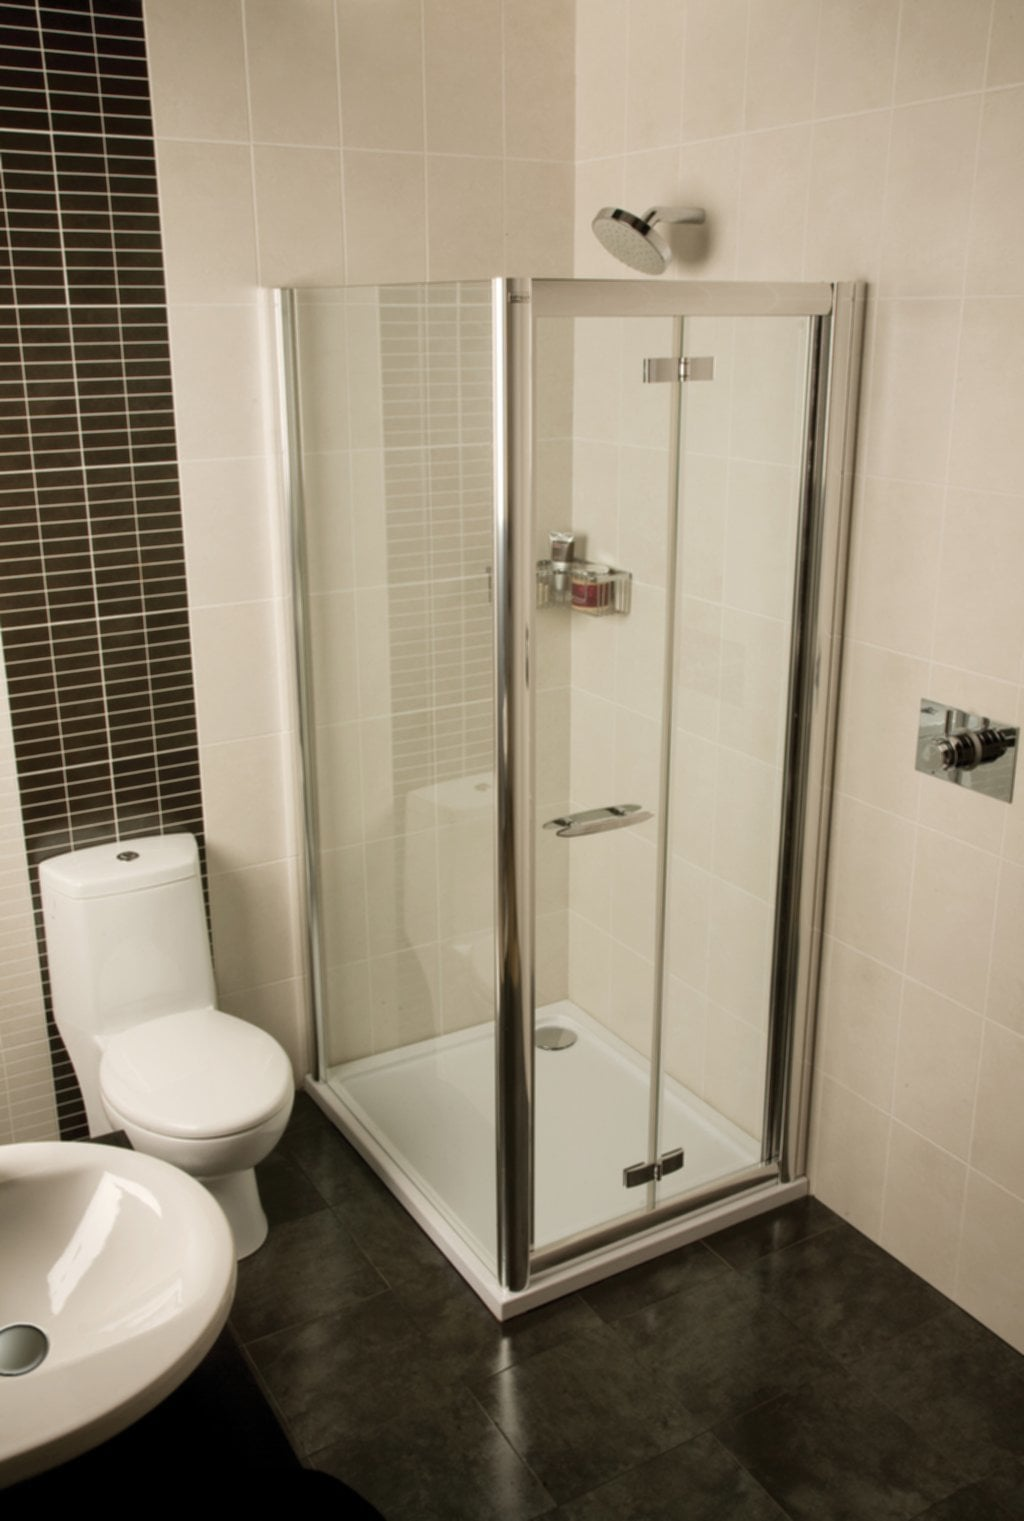 Space Saving Shower Solution Small Bathroom Roman Showers 39 Blog Shower Stalls For Small Bathrooms